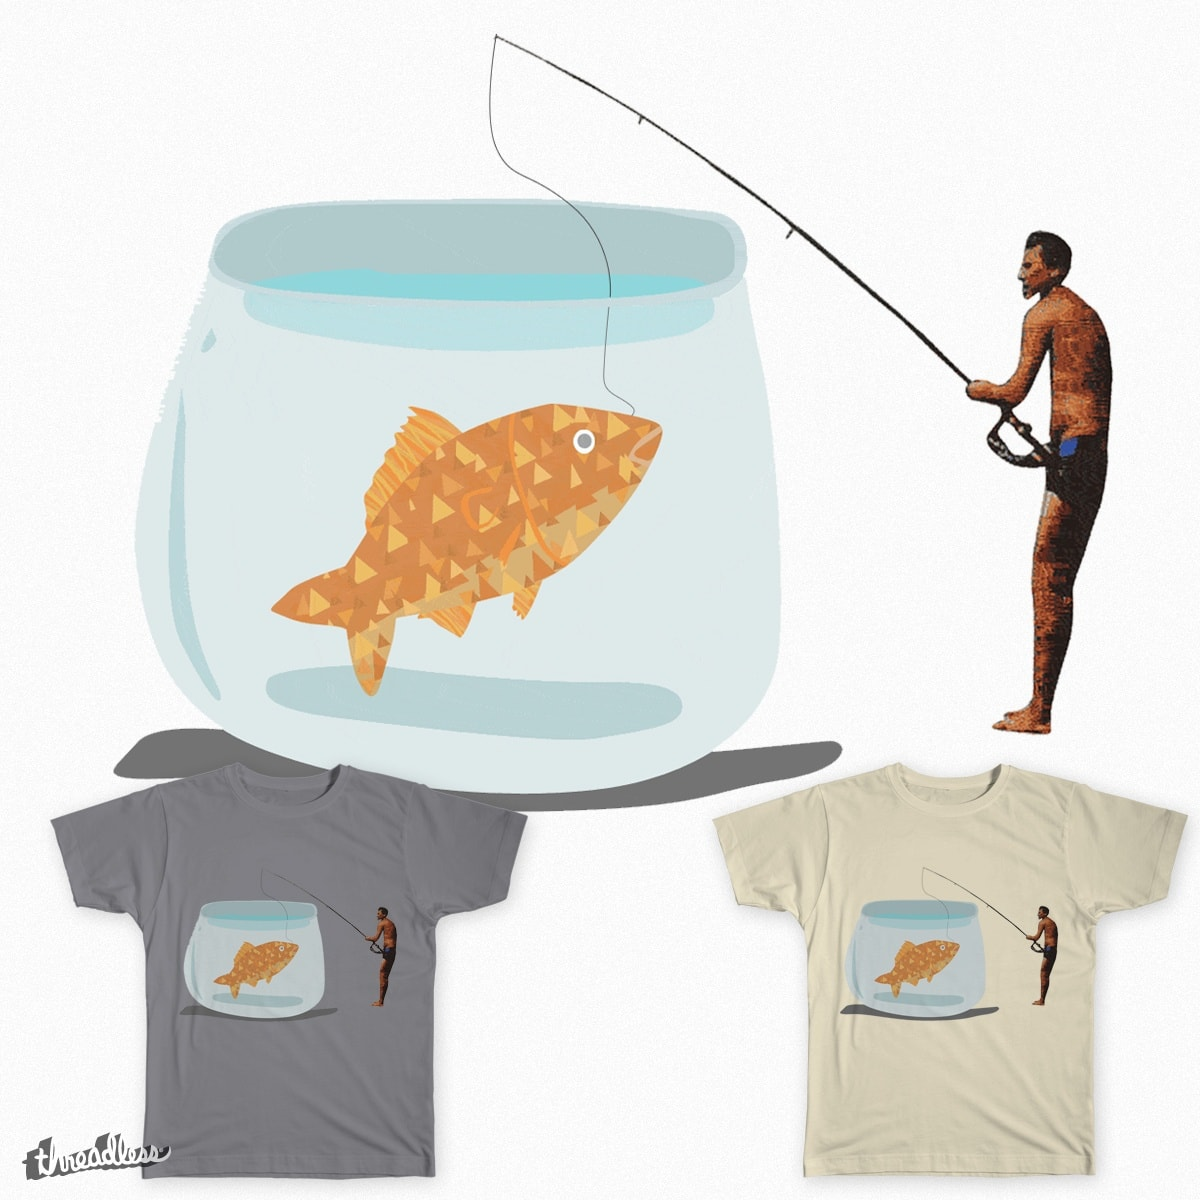 Fisherman by thedeadsquid on Threadless